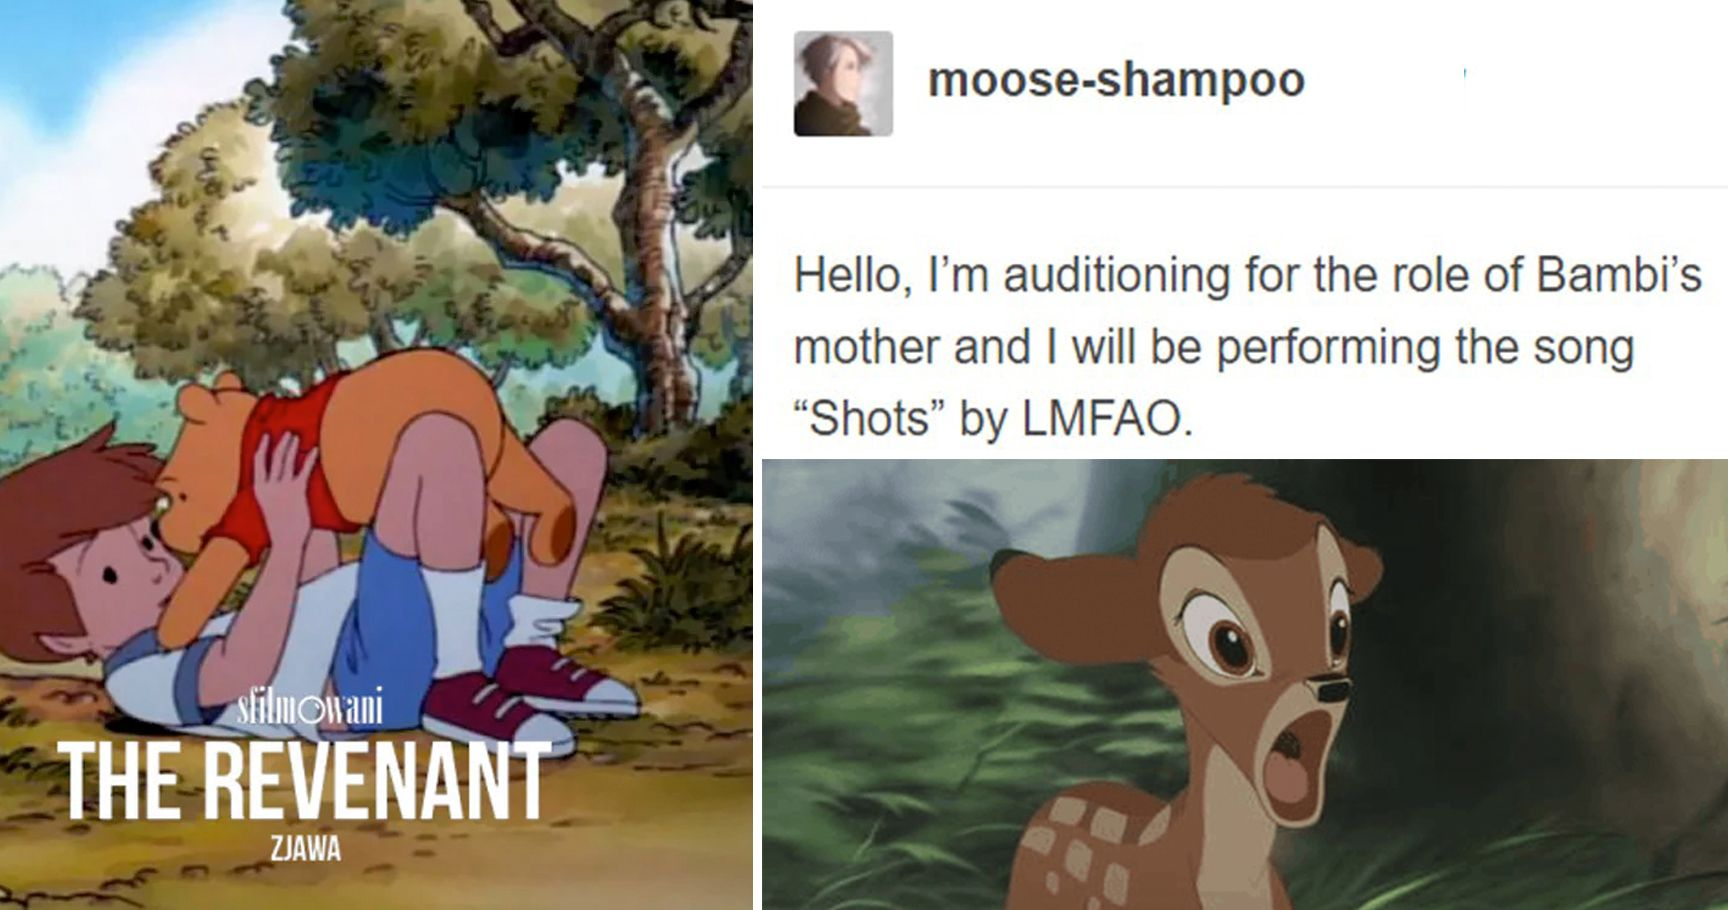 15 Inappropriate Memes That Will Never Let You Look At Disney The Same